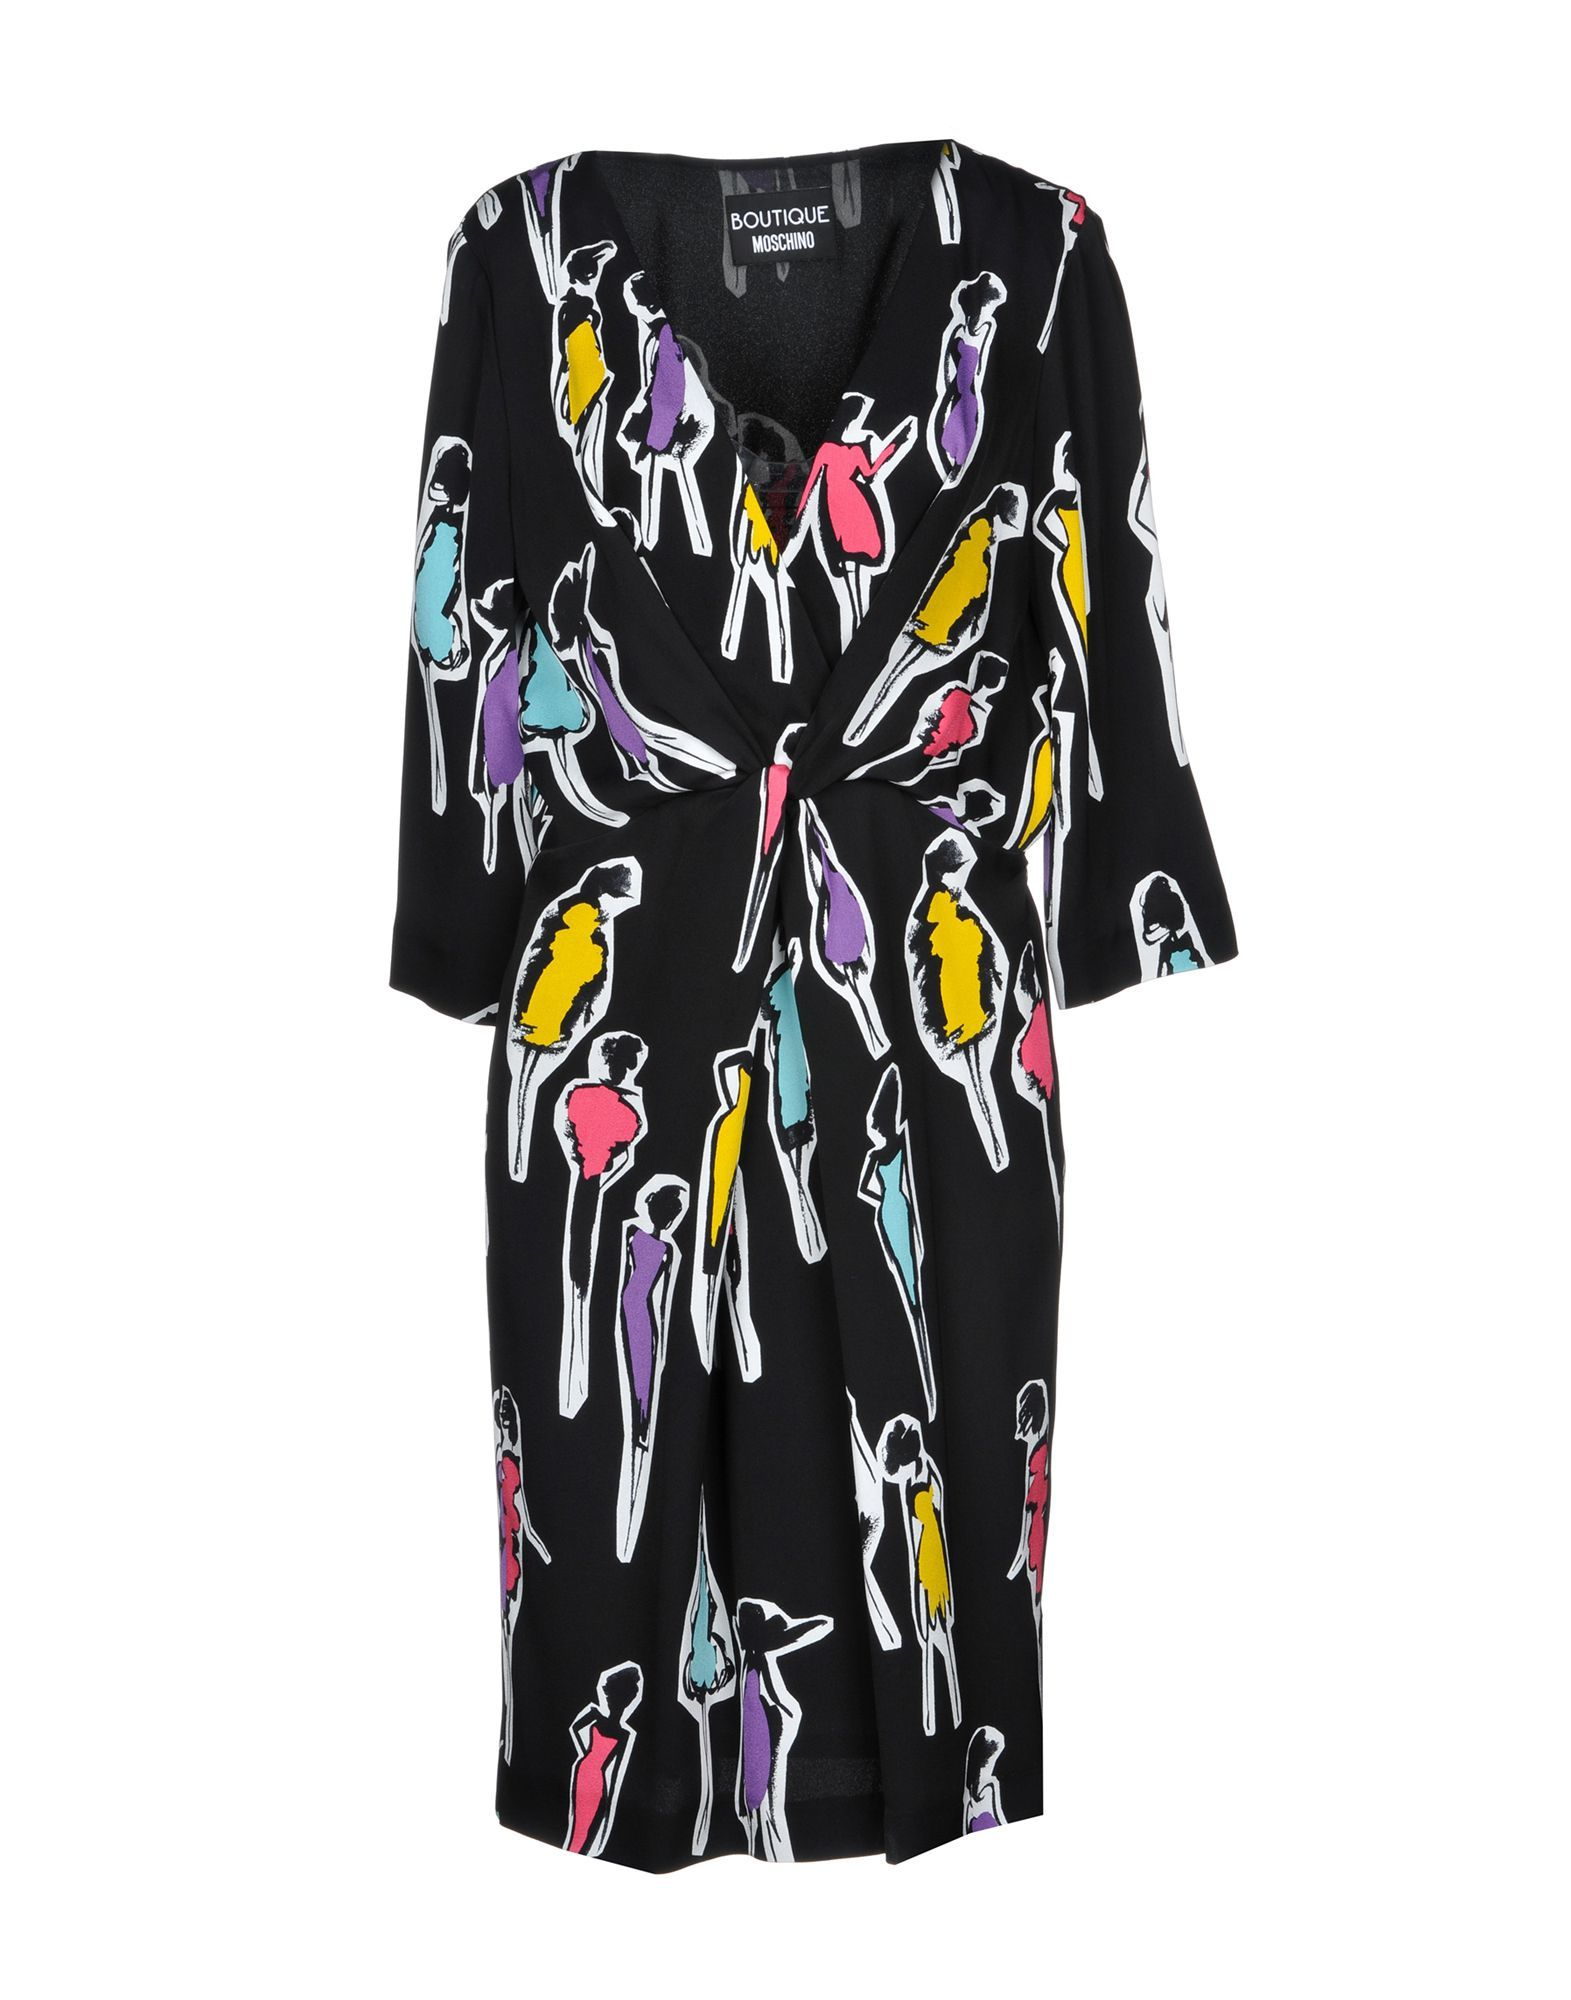 Boutique Moschino Black Print Long Sleeve Dress